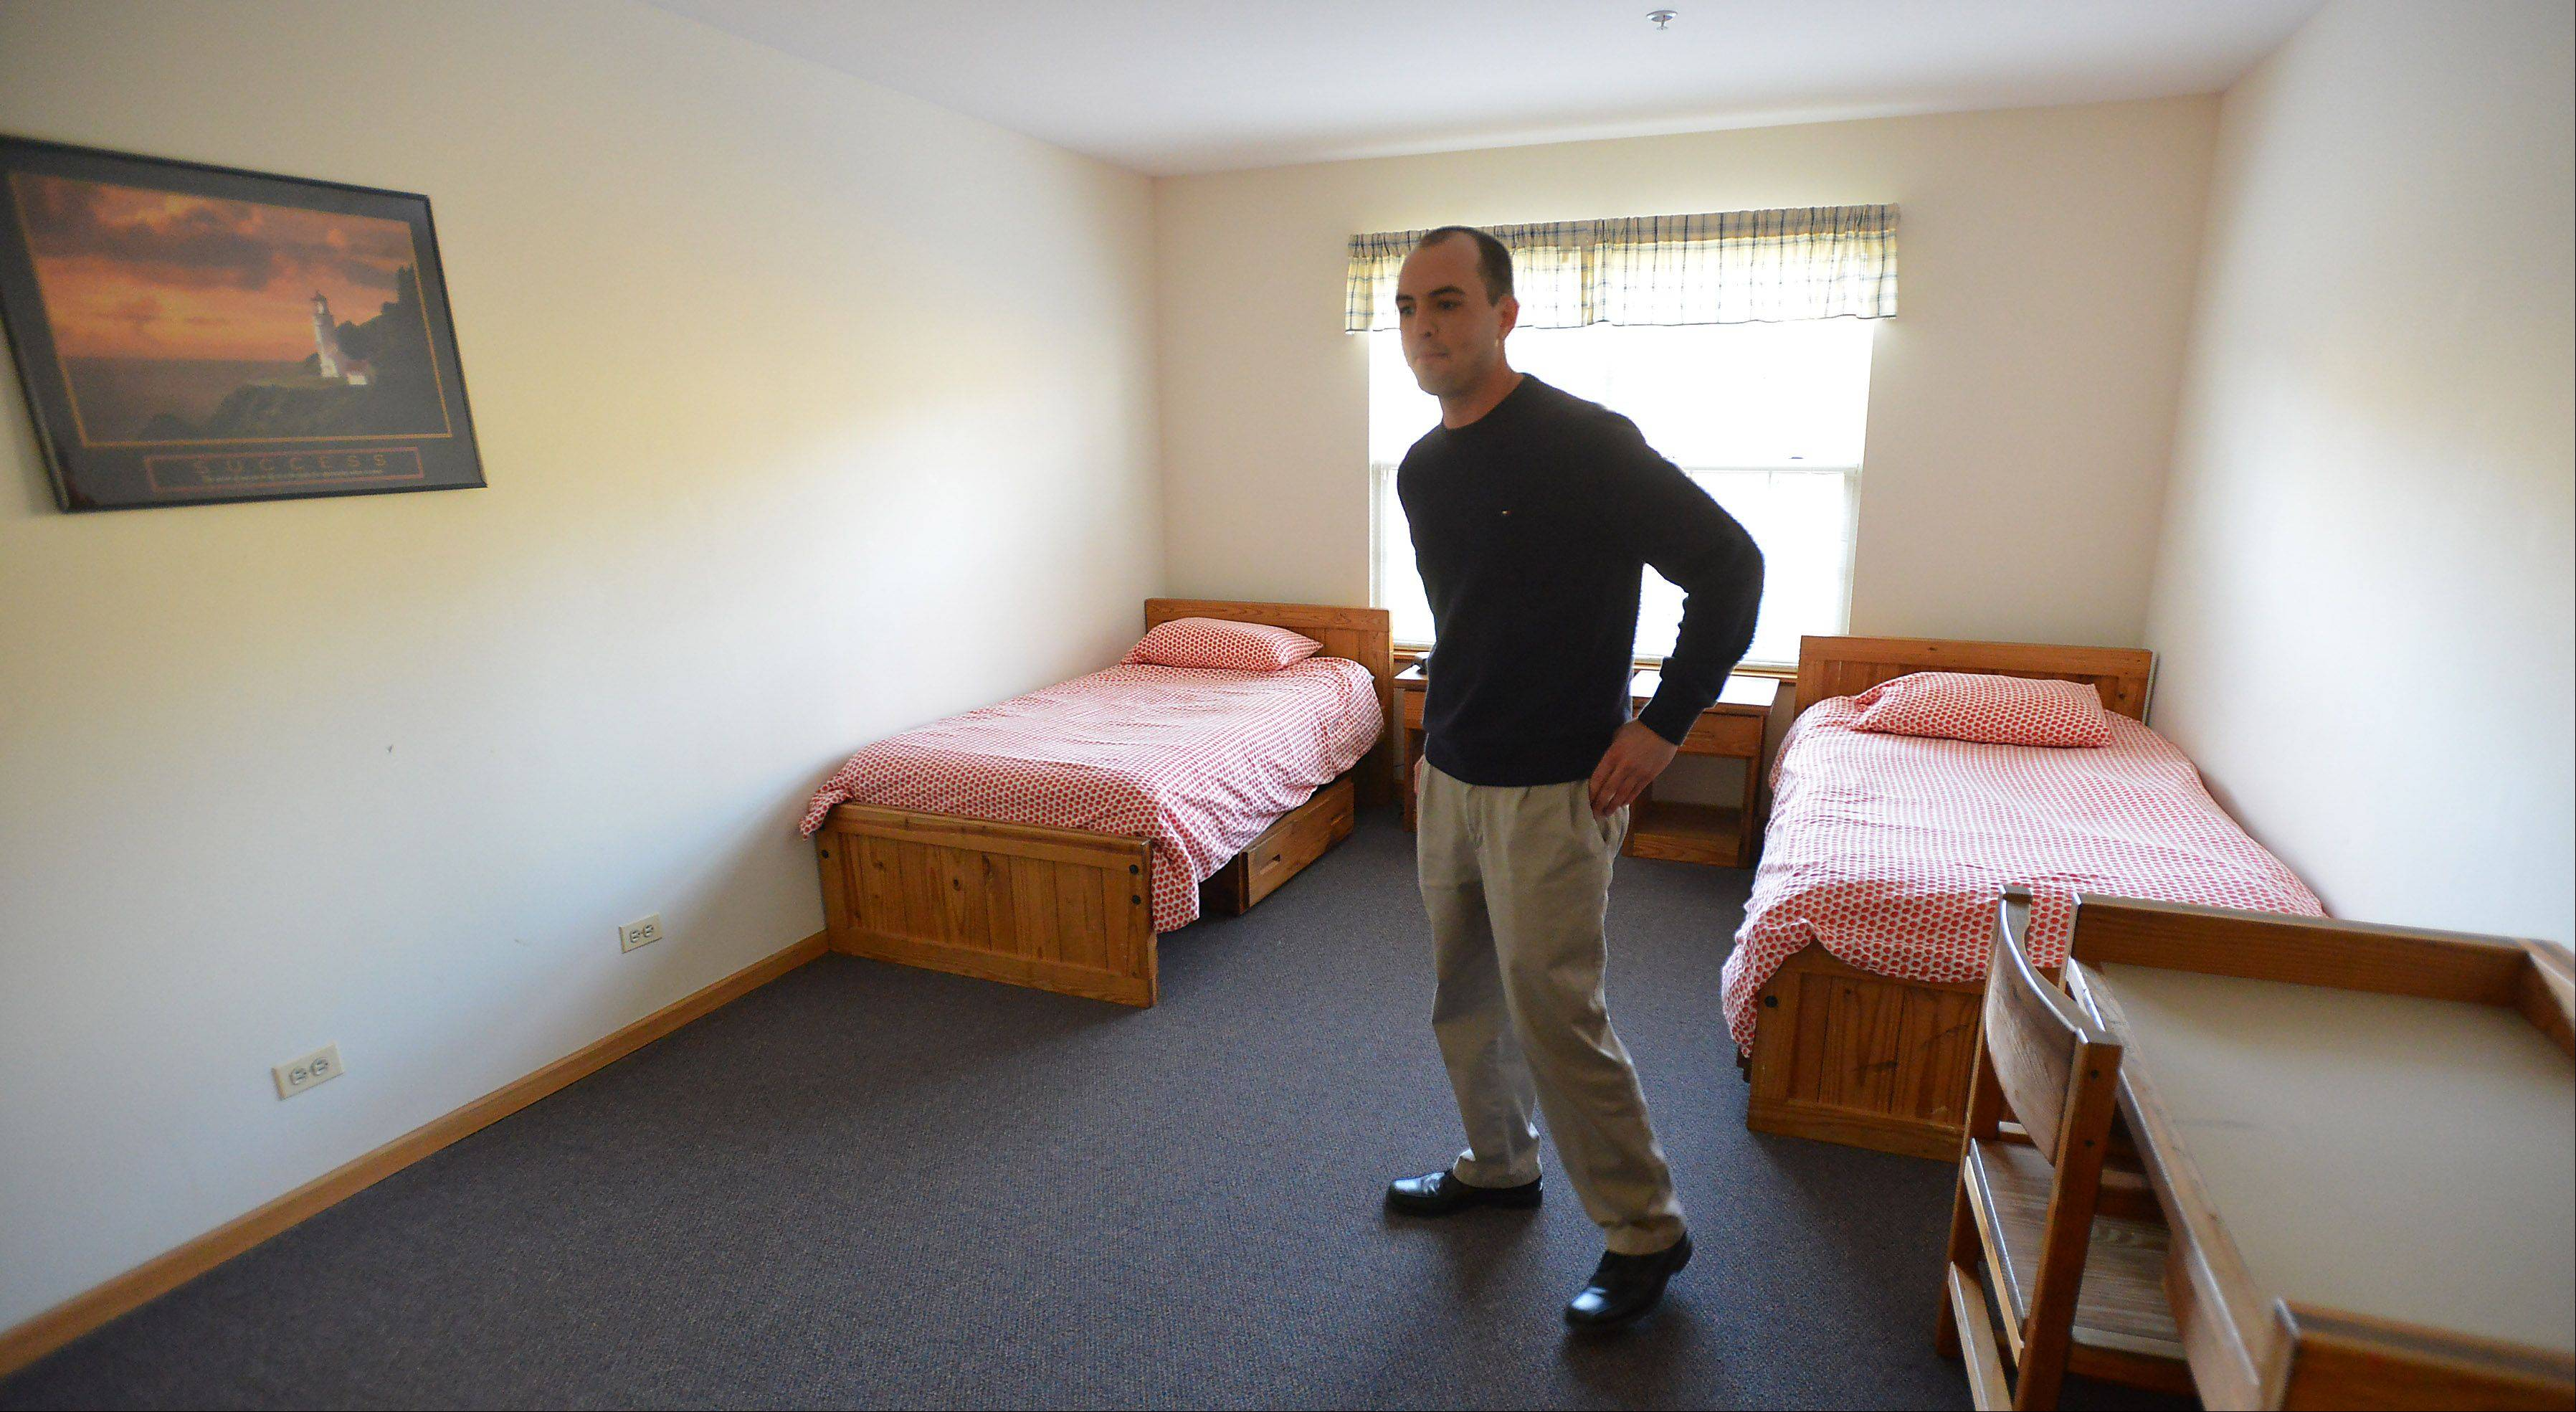 Andy Nogar, group home coordinator of the Shelter home in Palatine, shows off the bedroom where the adolescent boys sleep when they come to stay when trouble at home is too much for them.